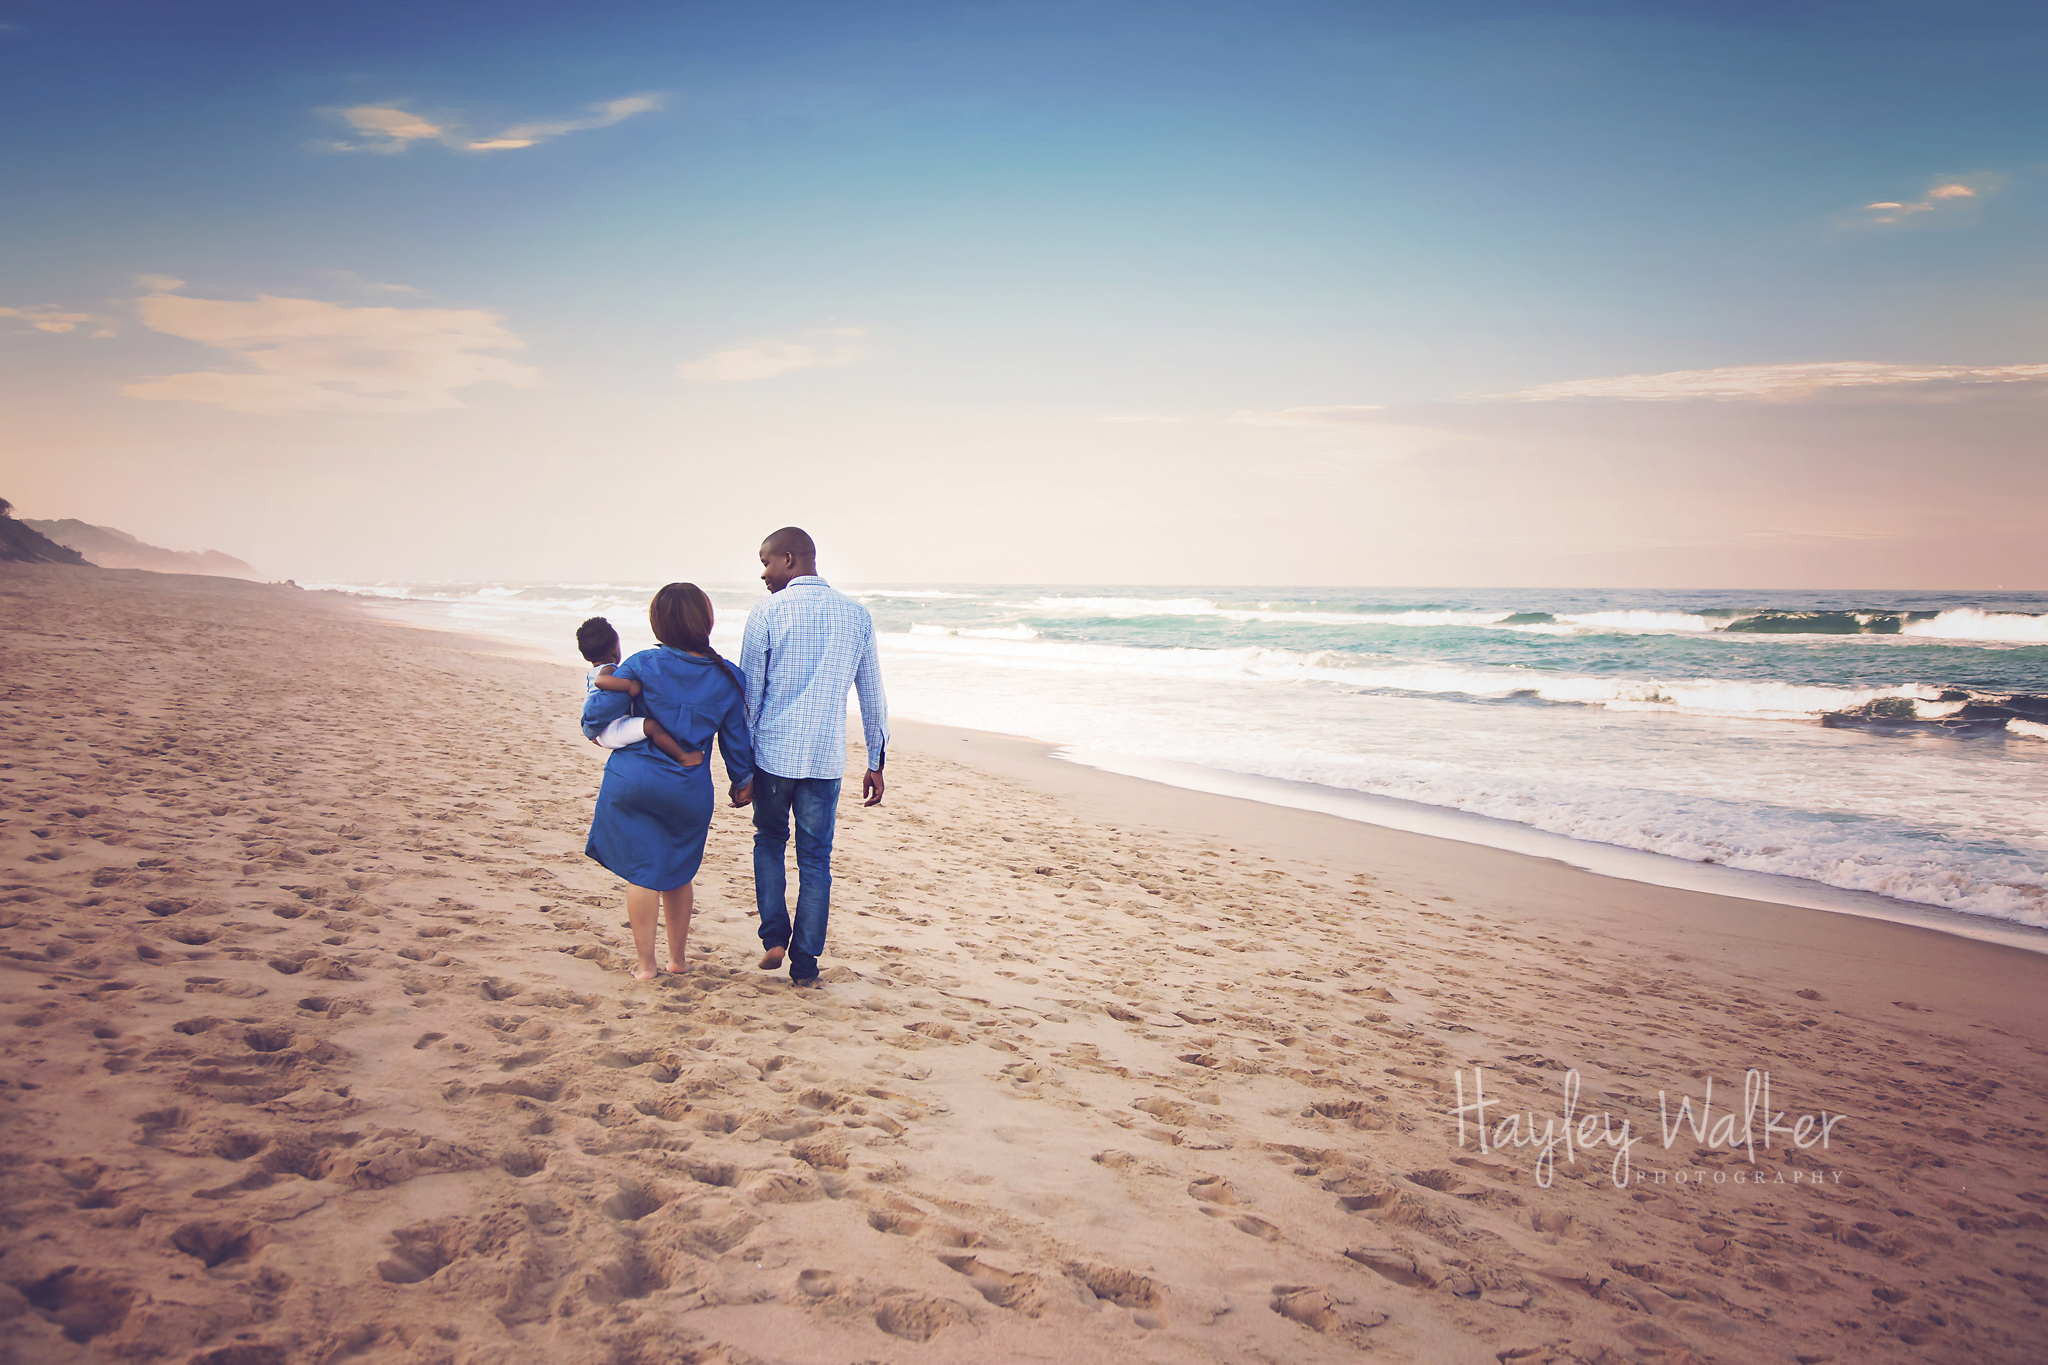 005-hayley-walker-photography-hillcrest-durban-photographer-family-photoshoot-beach-cakesmash